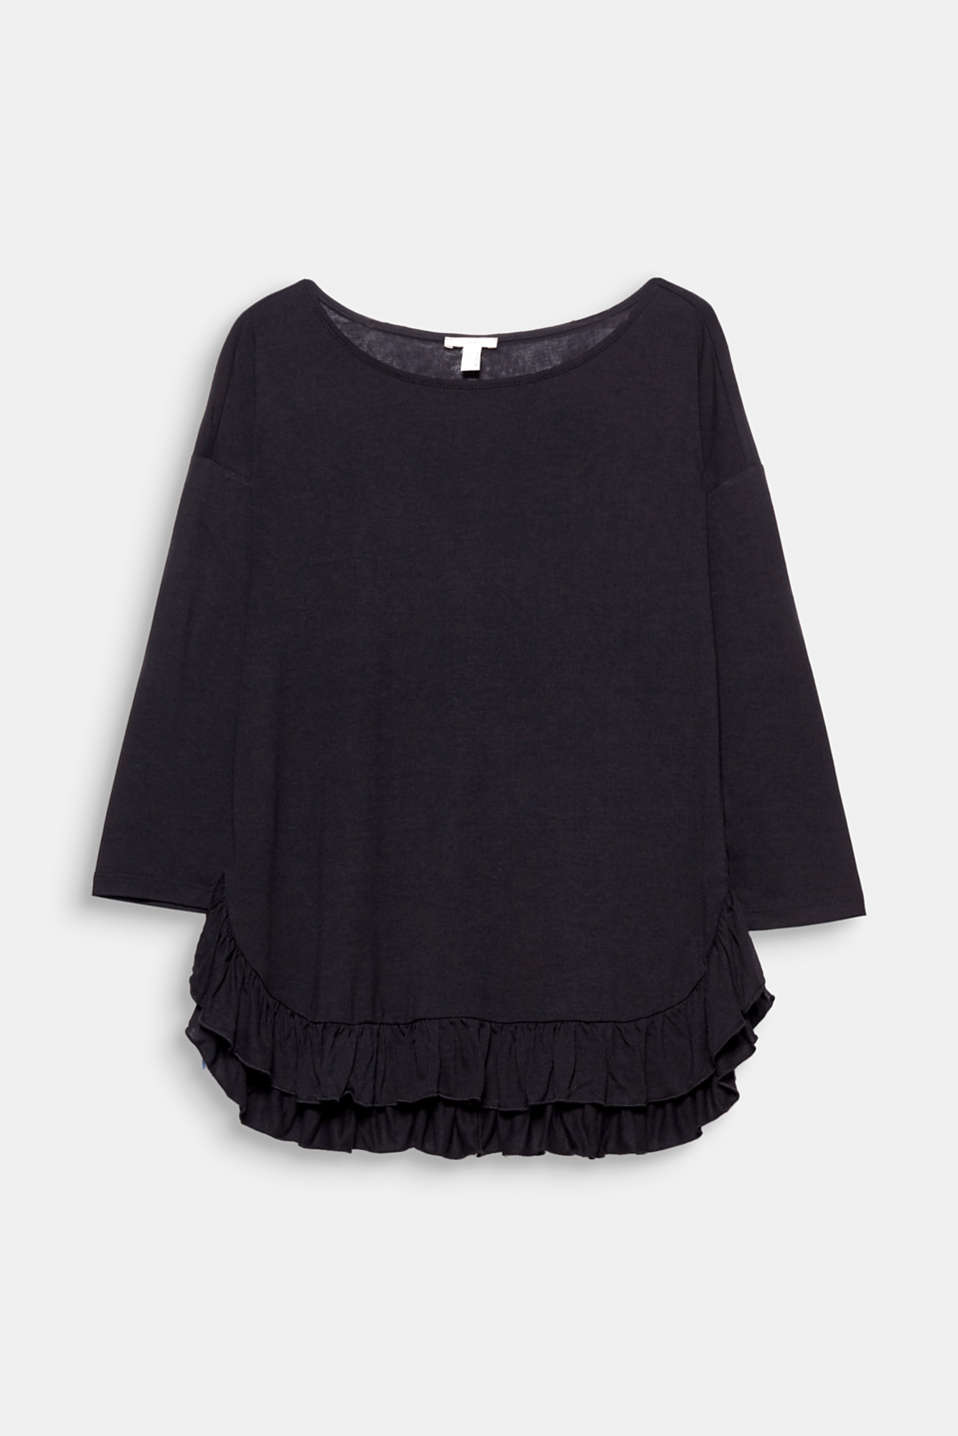 This soft top with three-quarter length sleeves and a frilled hem is super comfortable, trendy and pretty!